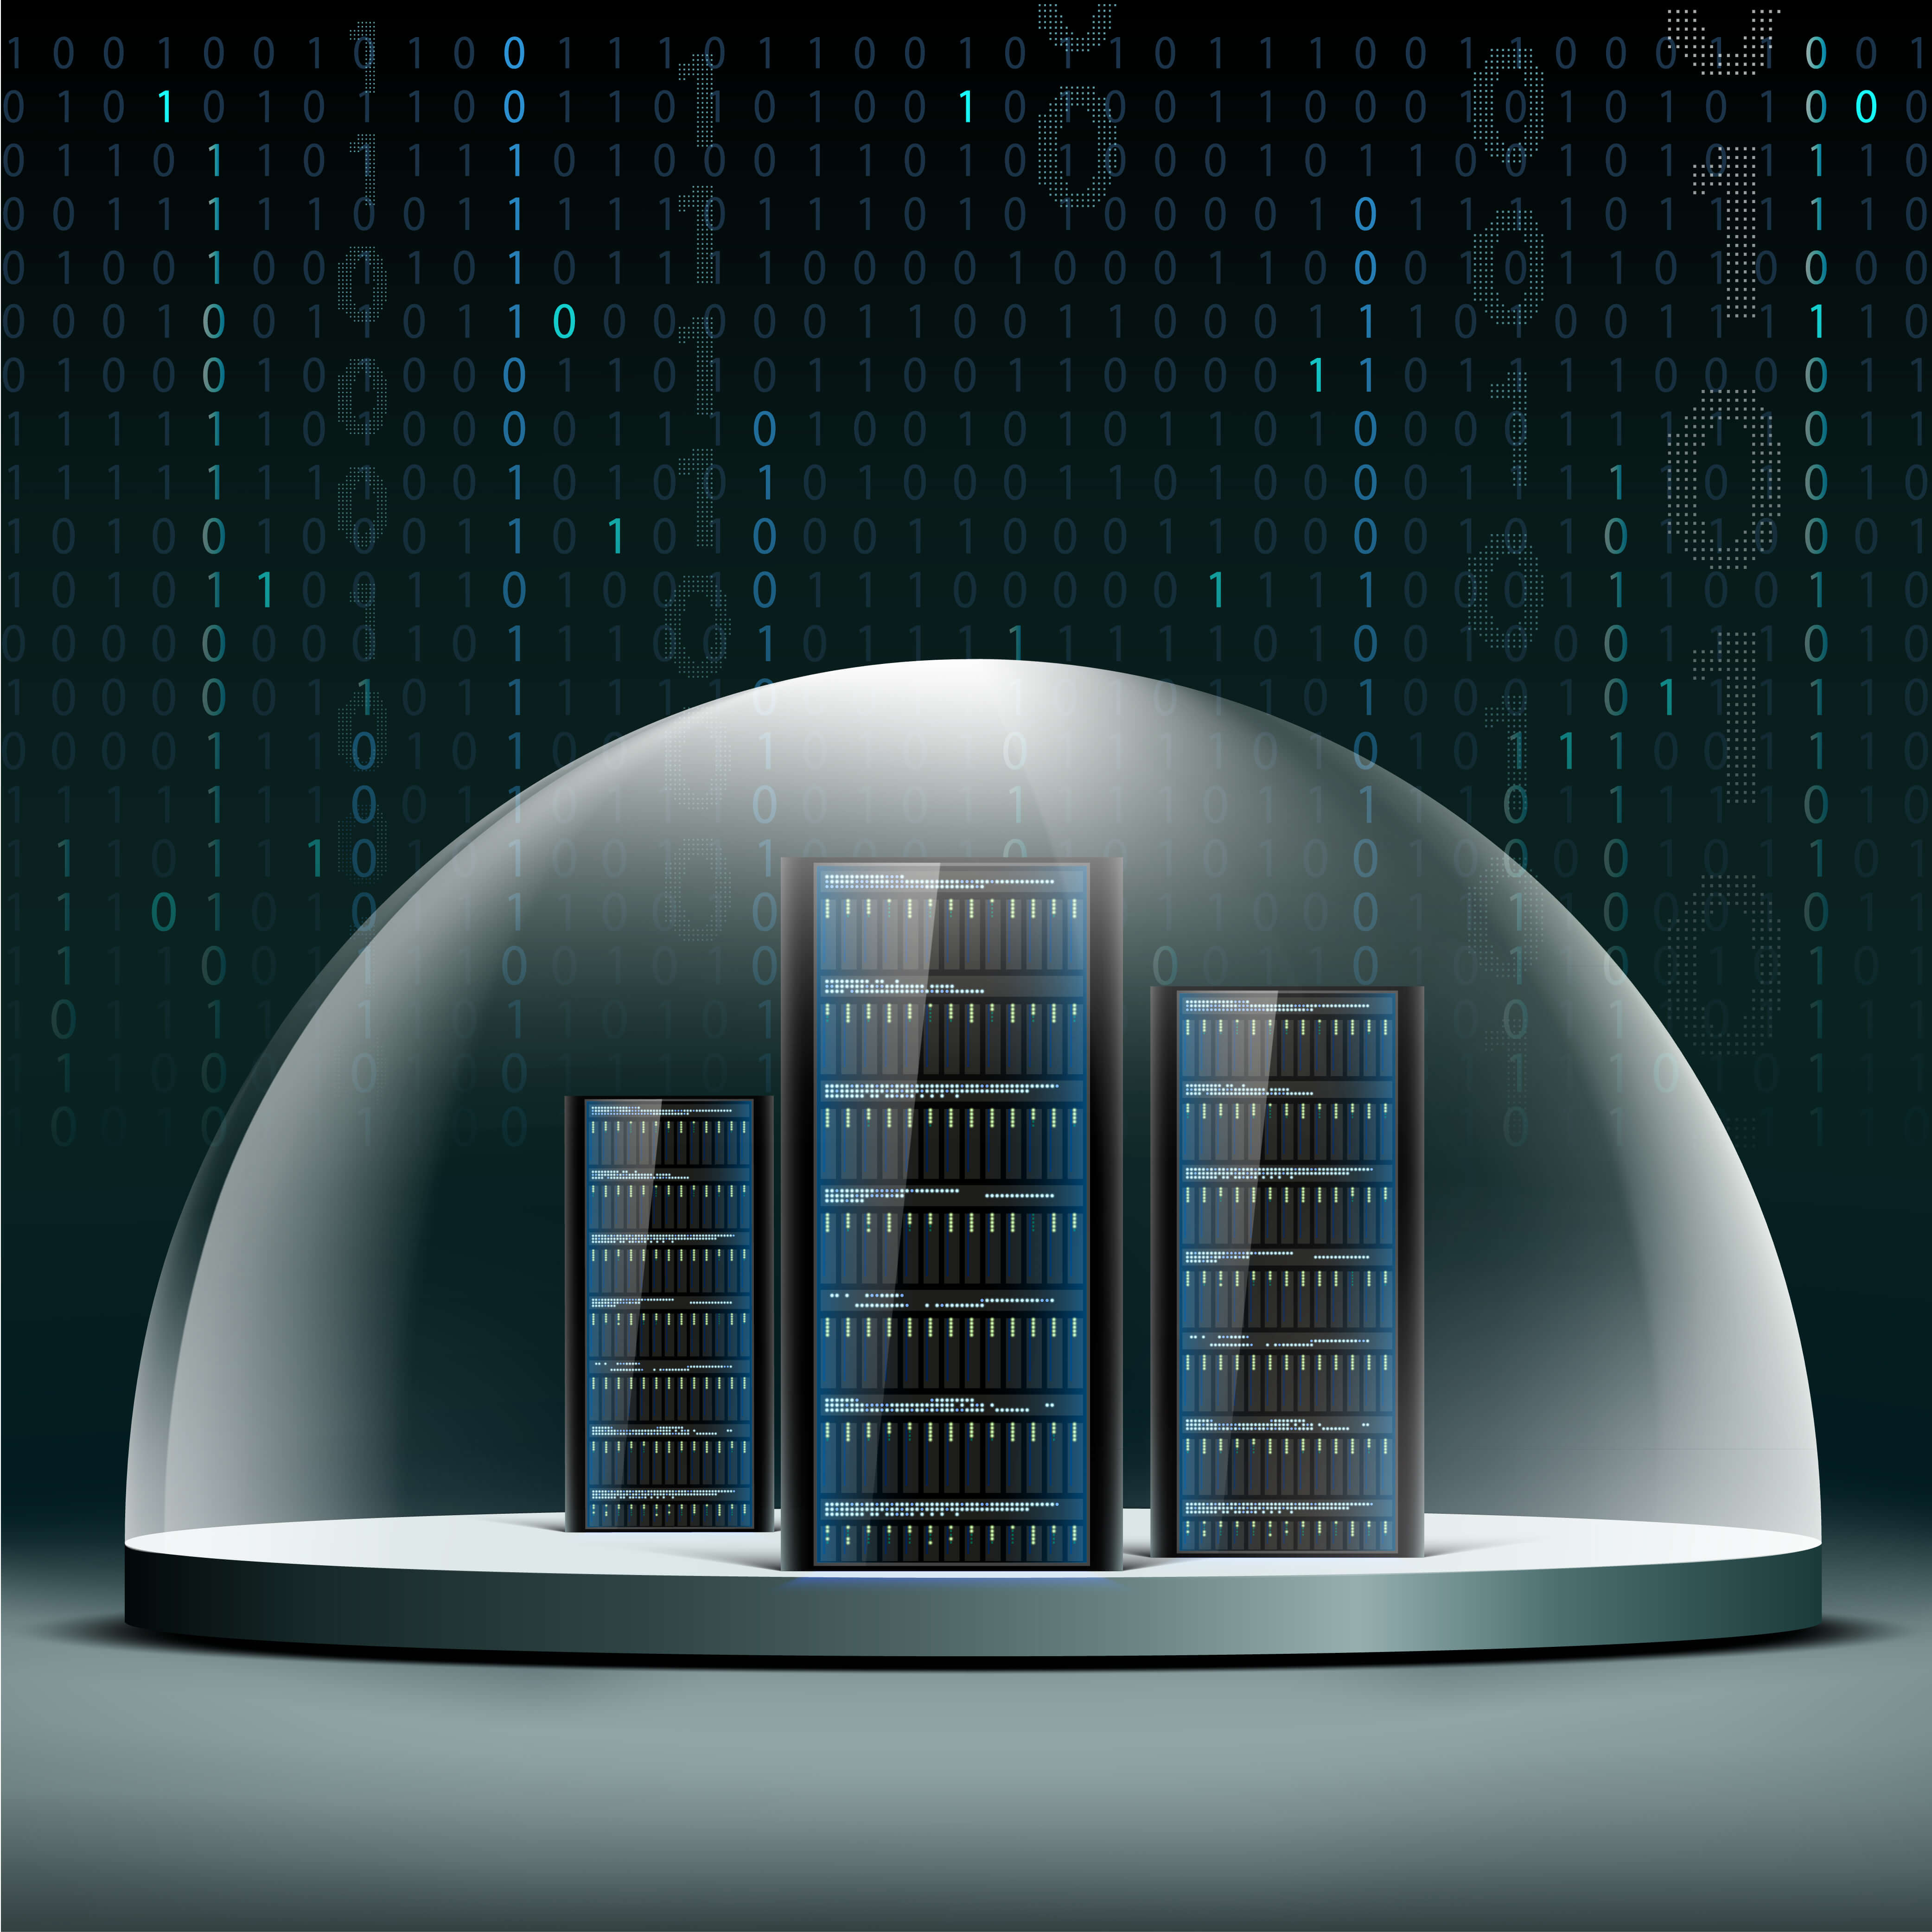 Why Do Financial Companies Want Mainframe Cybersecurity?